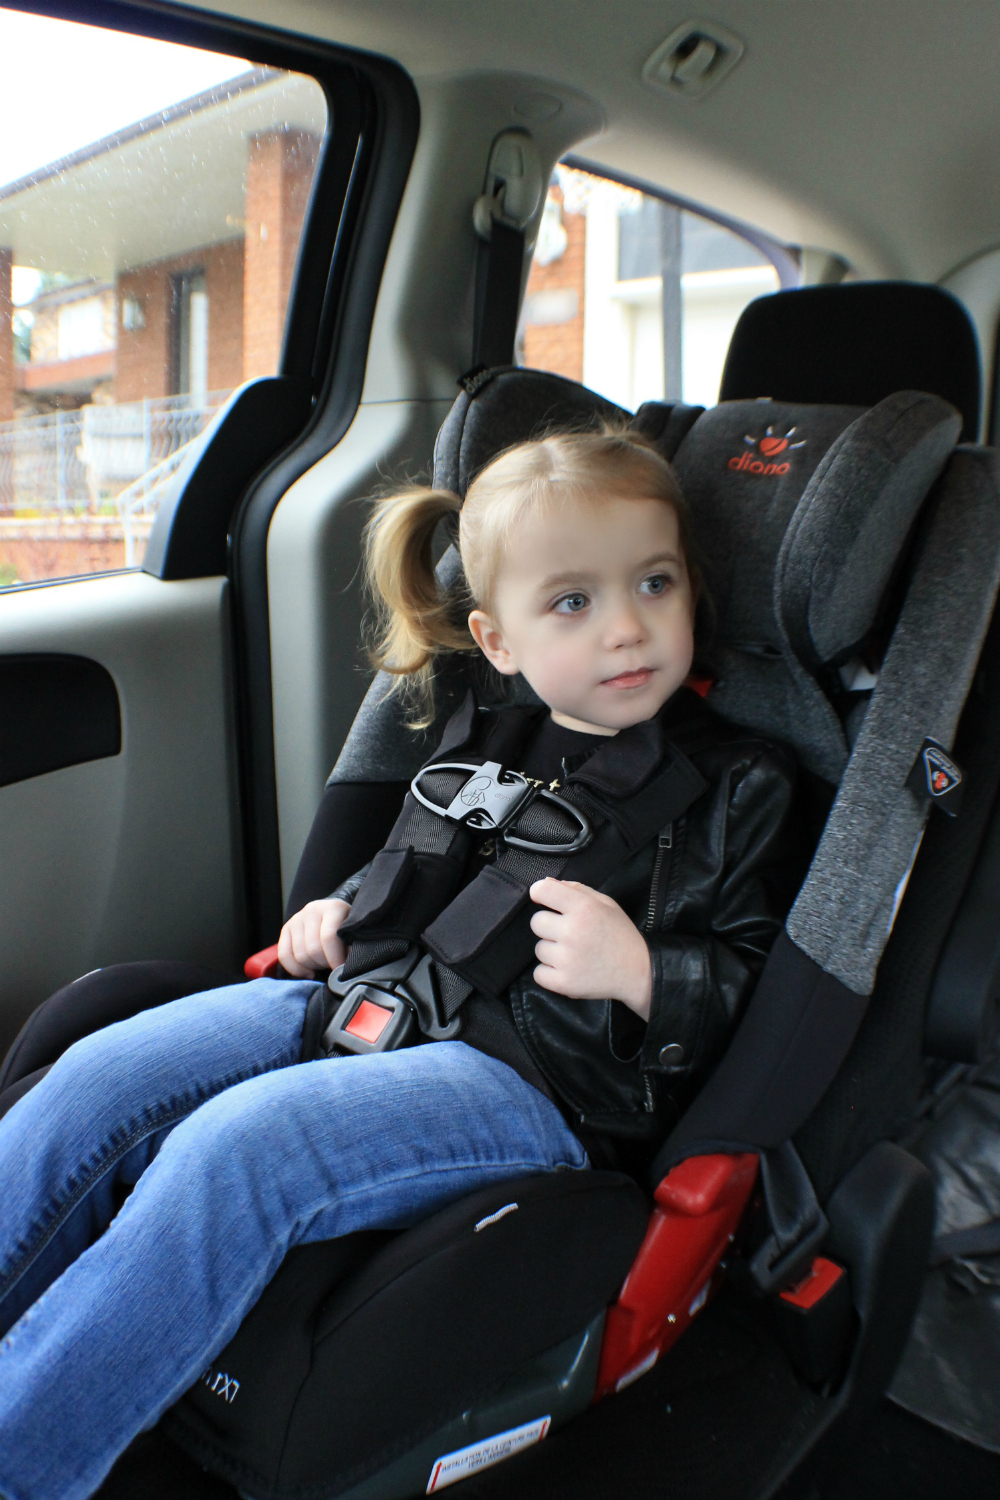 Diono Car Seat Installation Instructions